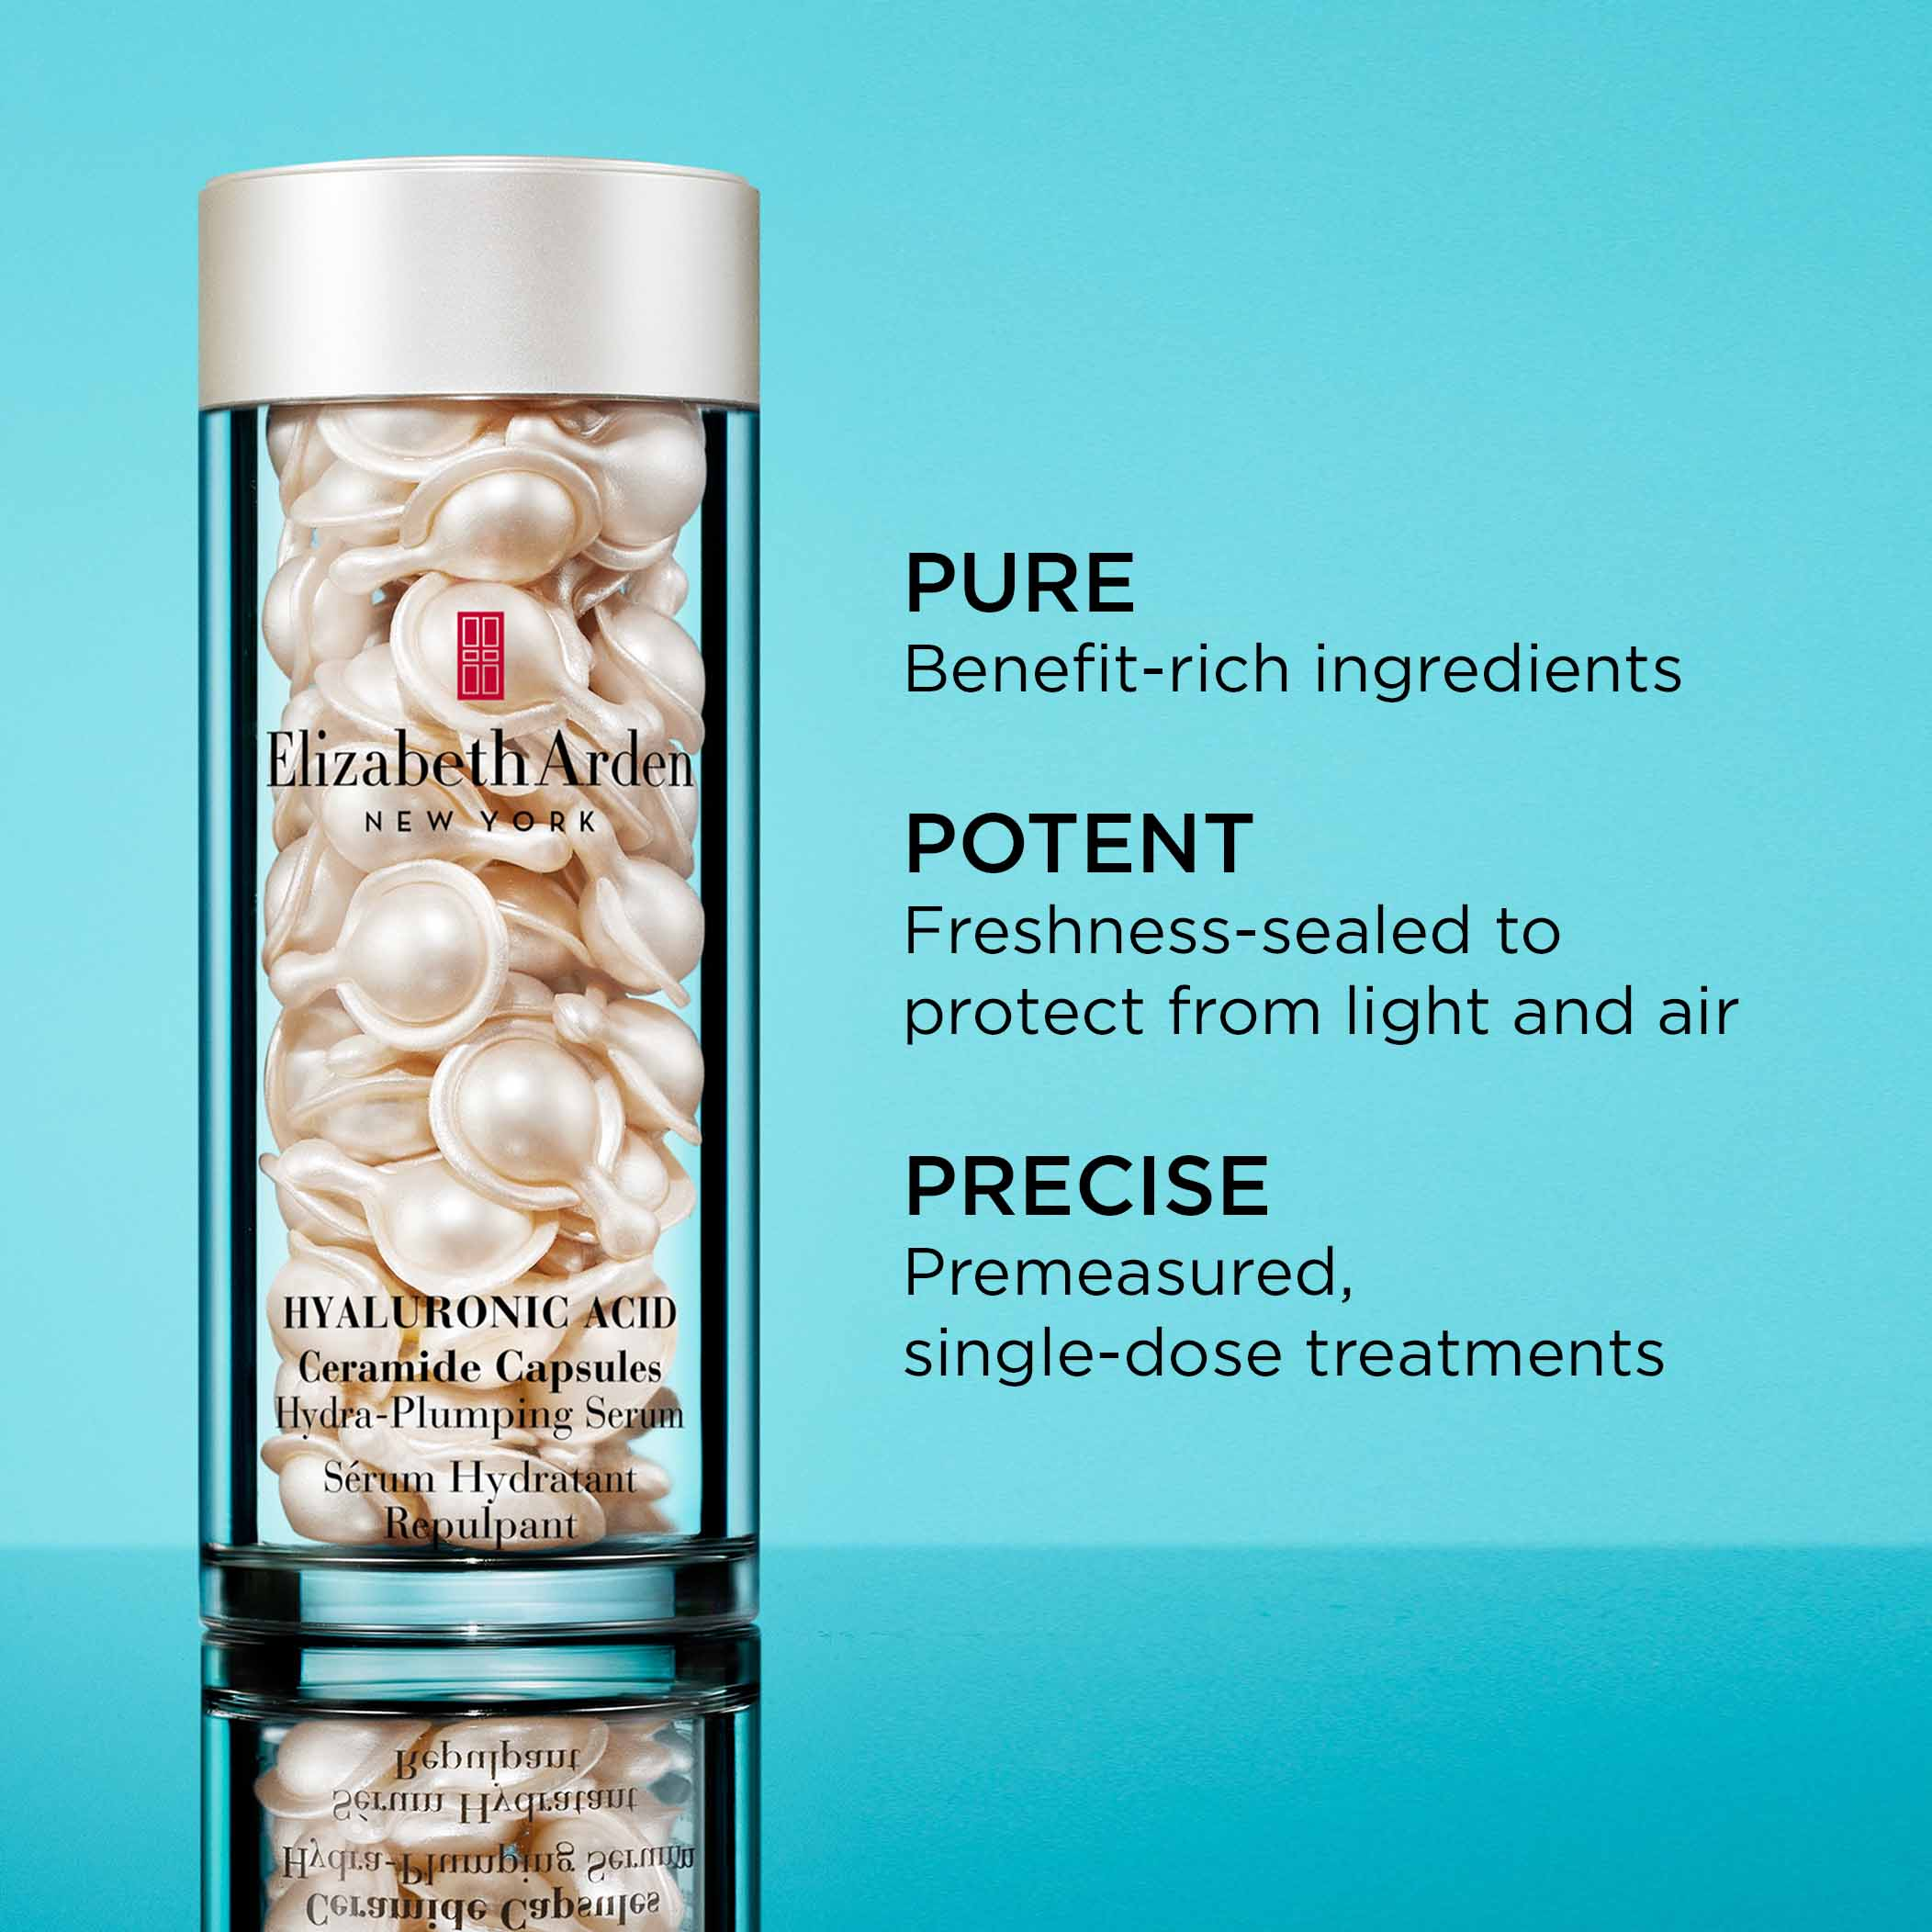 Pure-Benefit-rich ingredients, Potent-Freshness-sealed to protect from light and air, Precise- premeasured, single-dose treatments